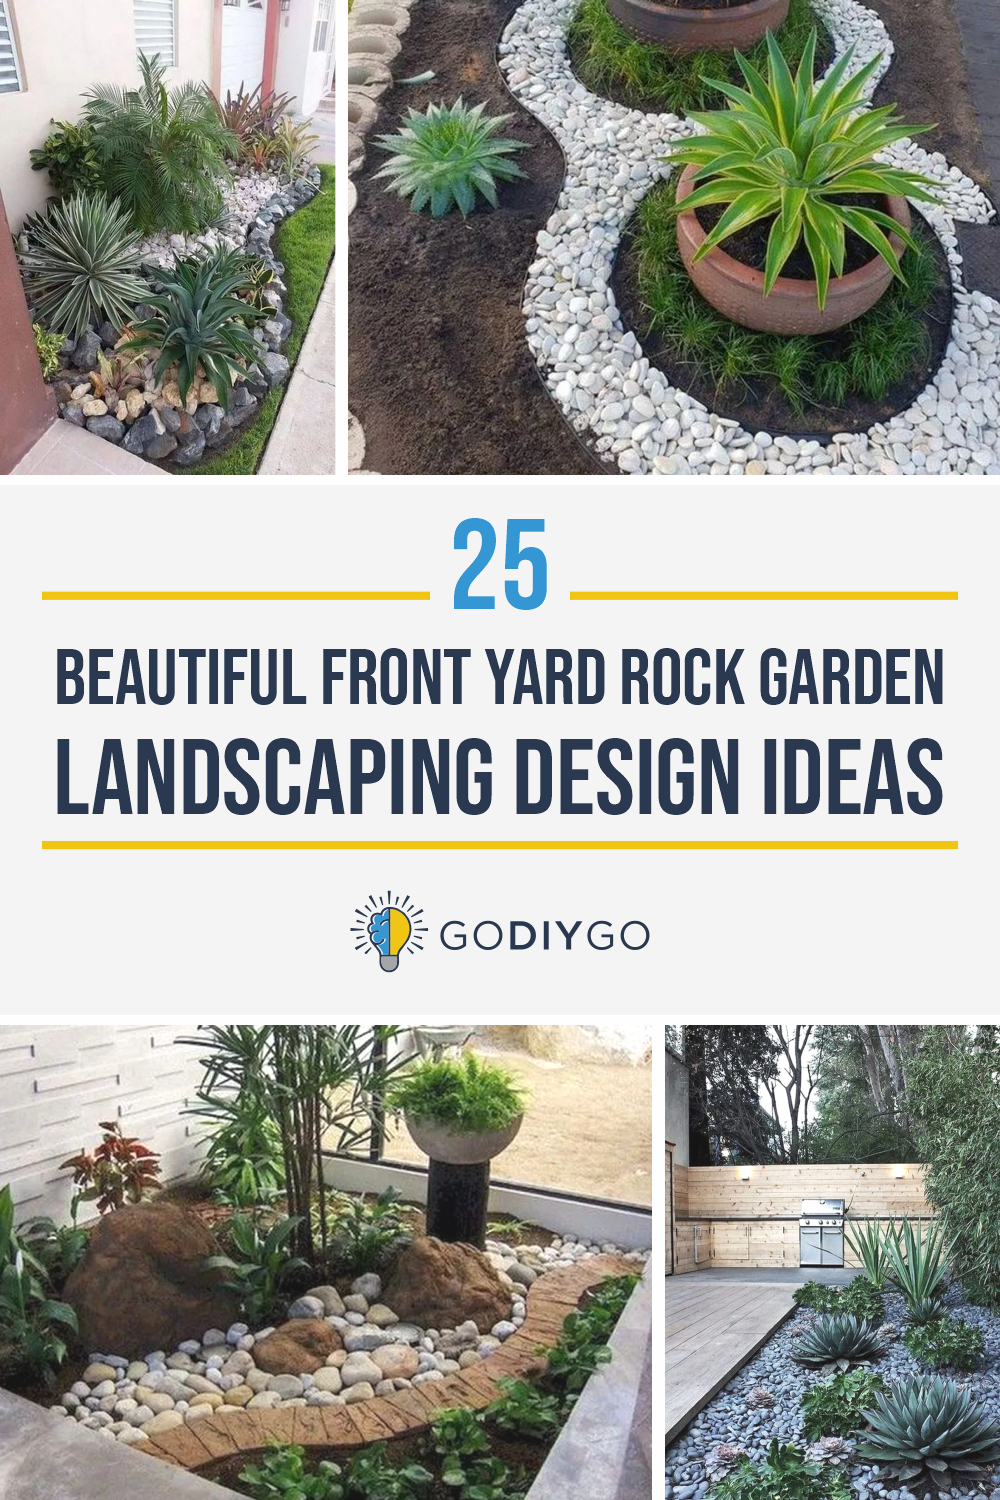 25 Beautiful Front Yard Rock Garden Landscaping Design Ideas Godiygo Com